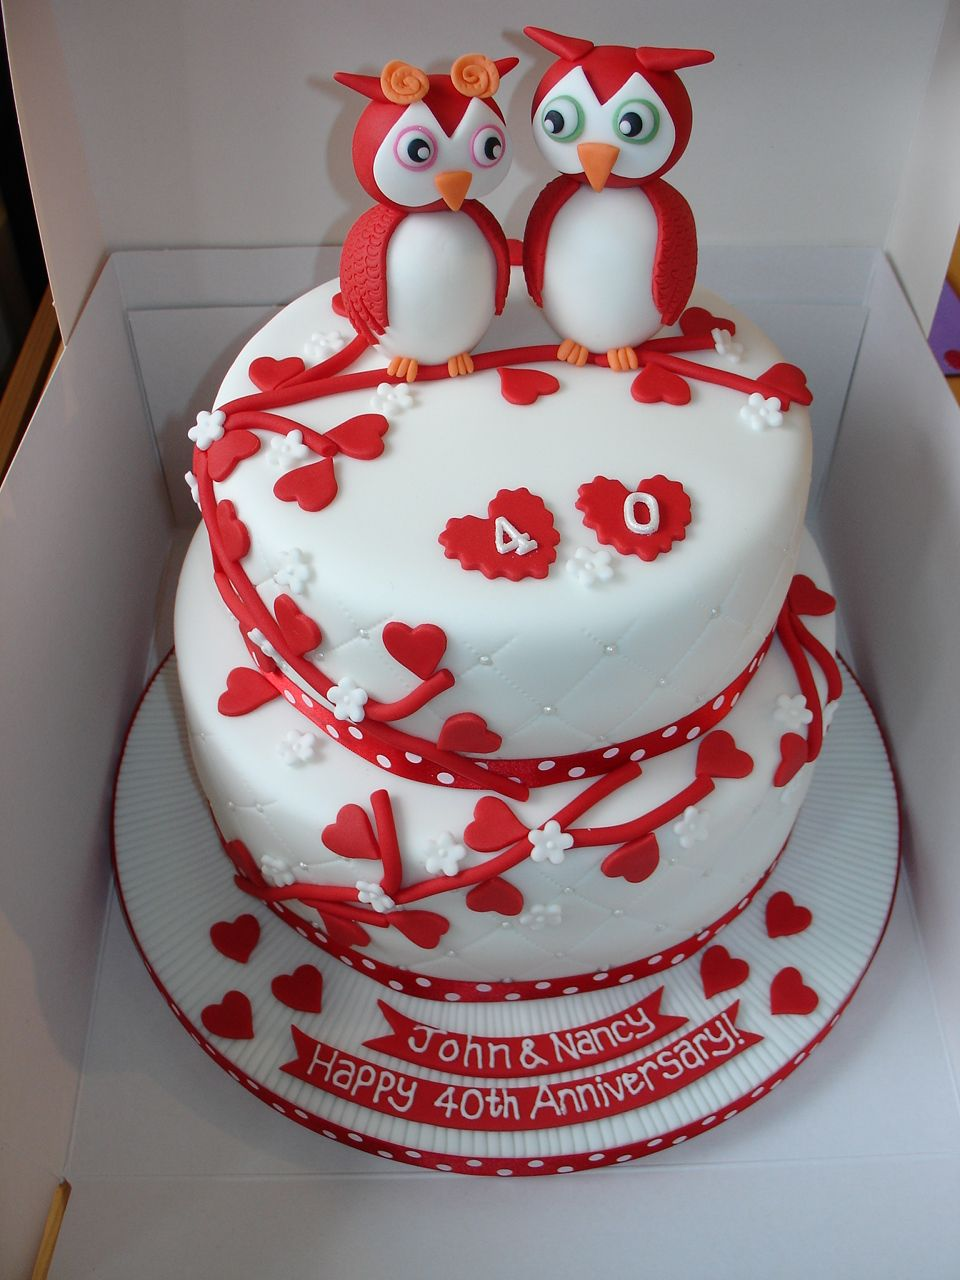 40th Wedding Anniversary with Owls xMCx | Wedding Anniversary Cakes ...